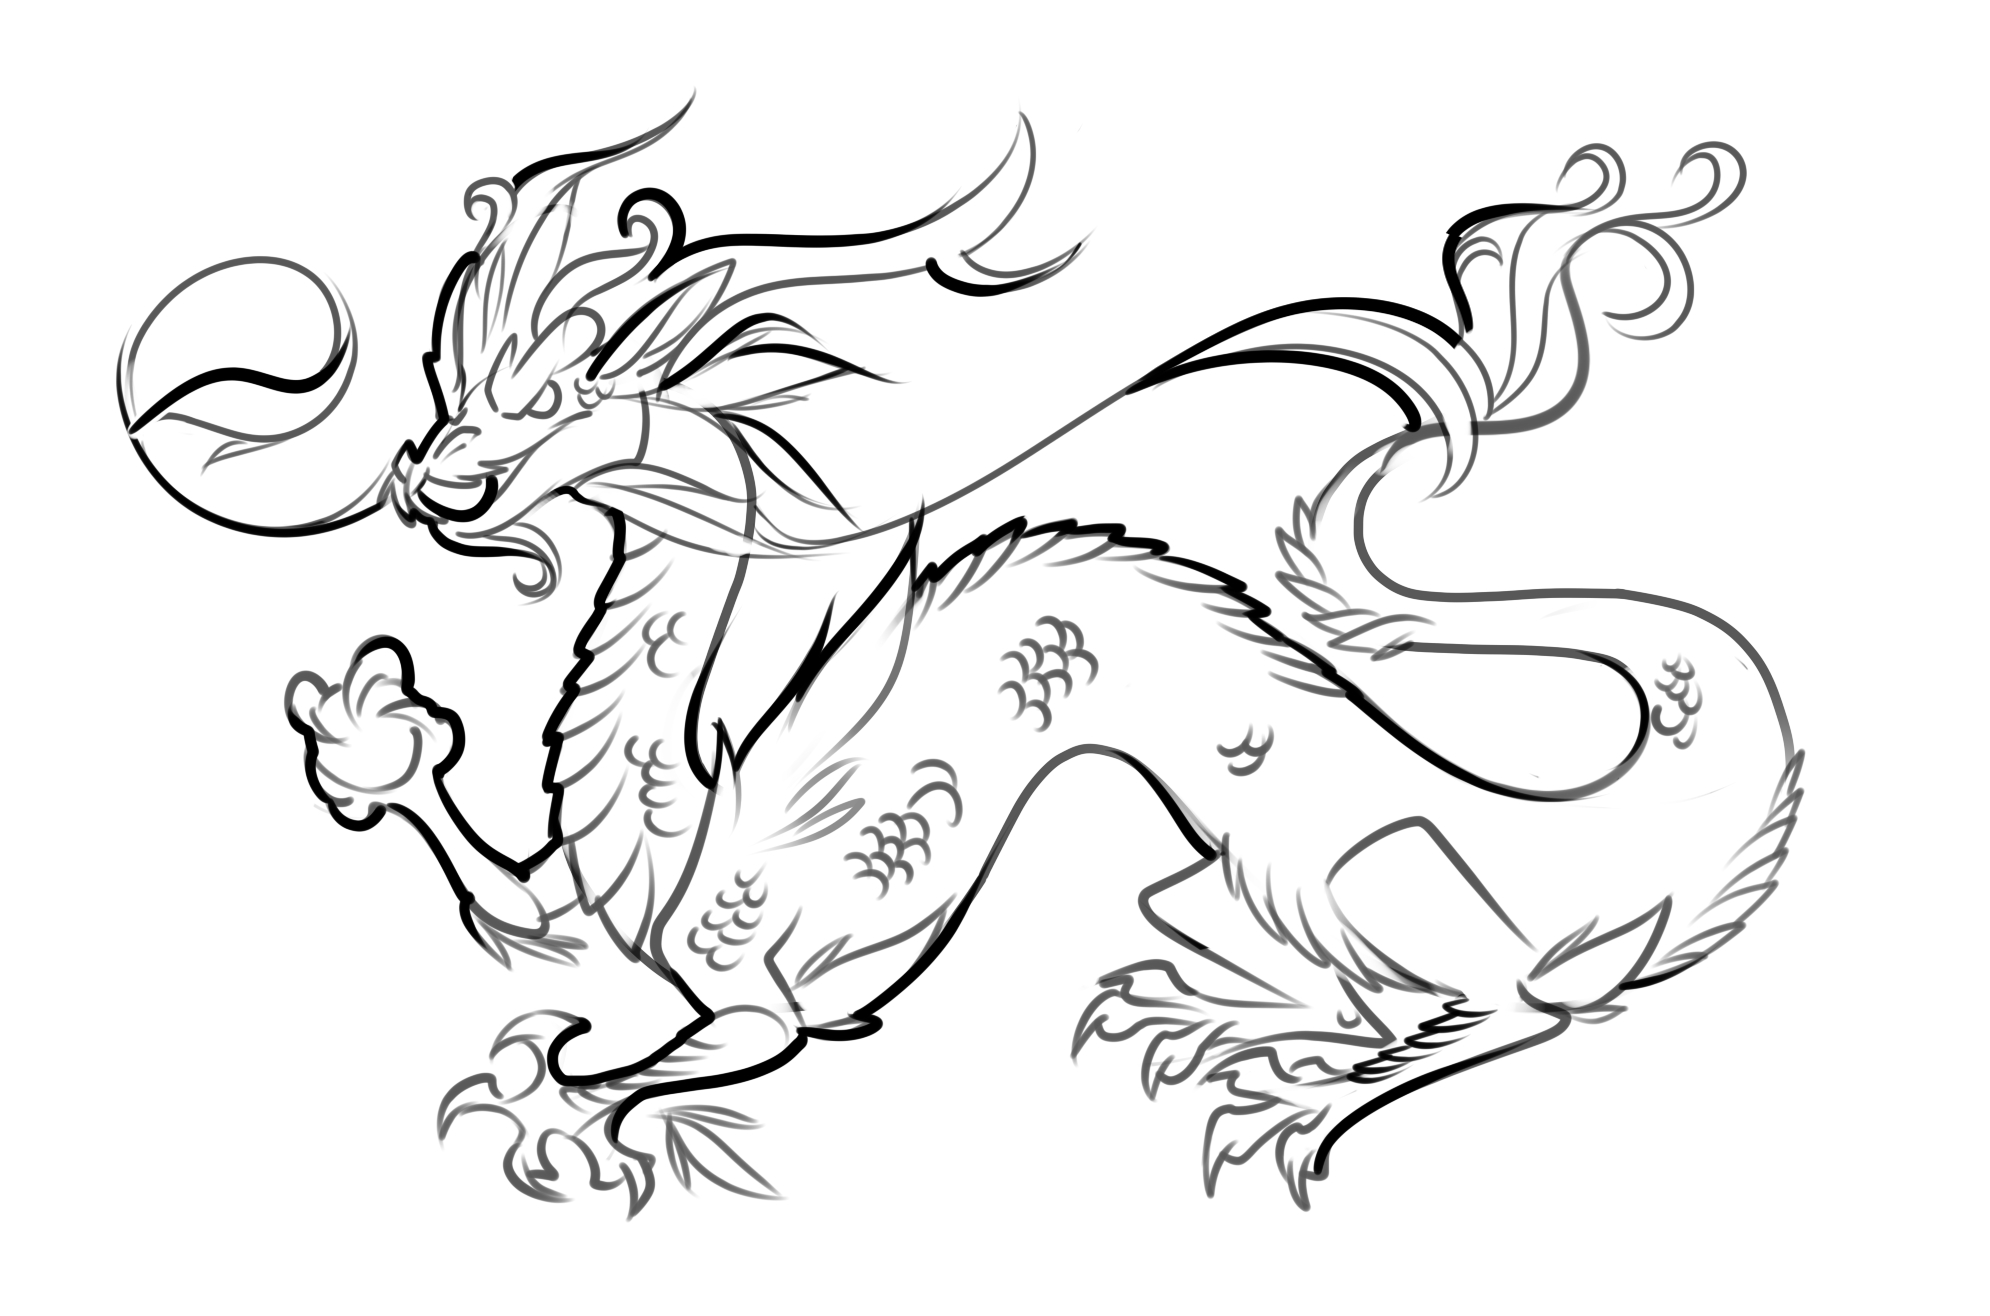 1990x1316 Fresh Dragon Head Coloring Page Vitlt Free Coloring Pages Download